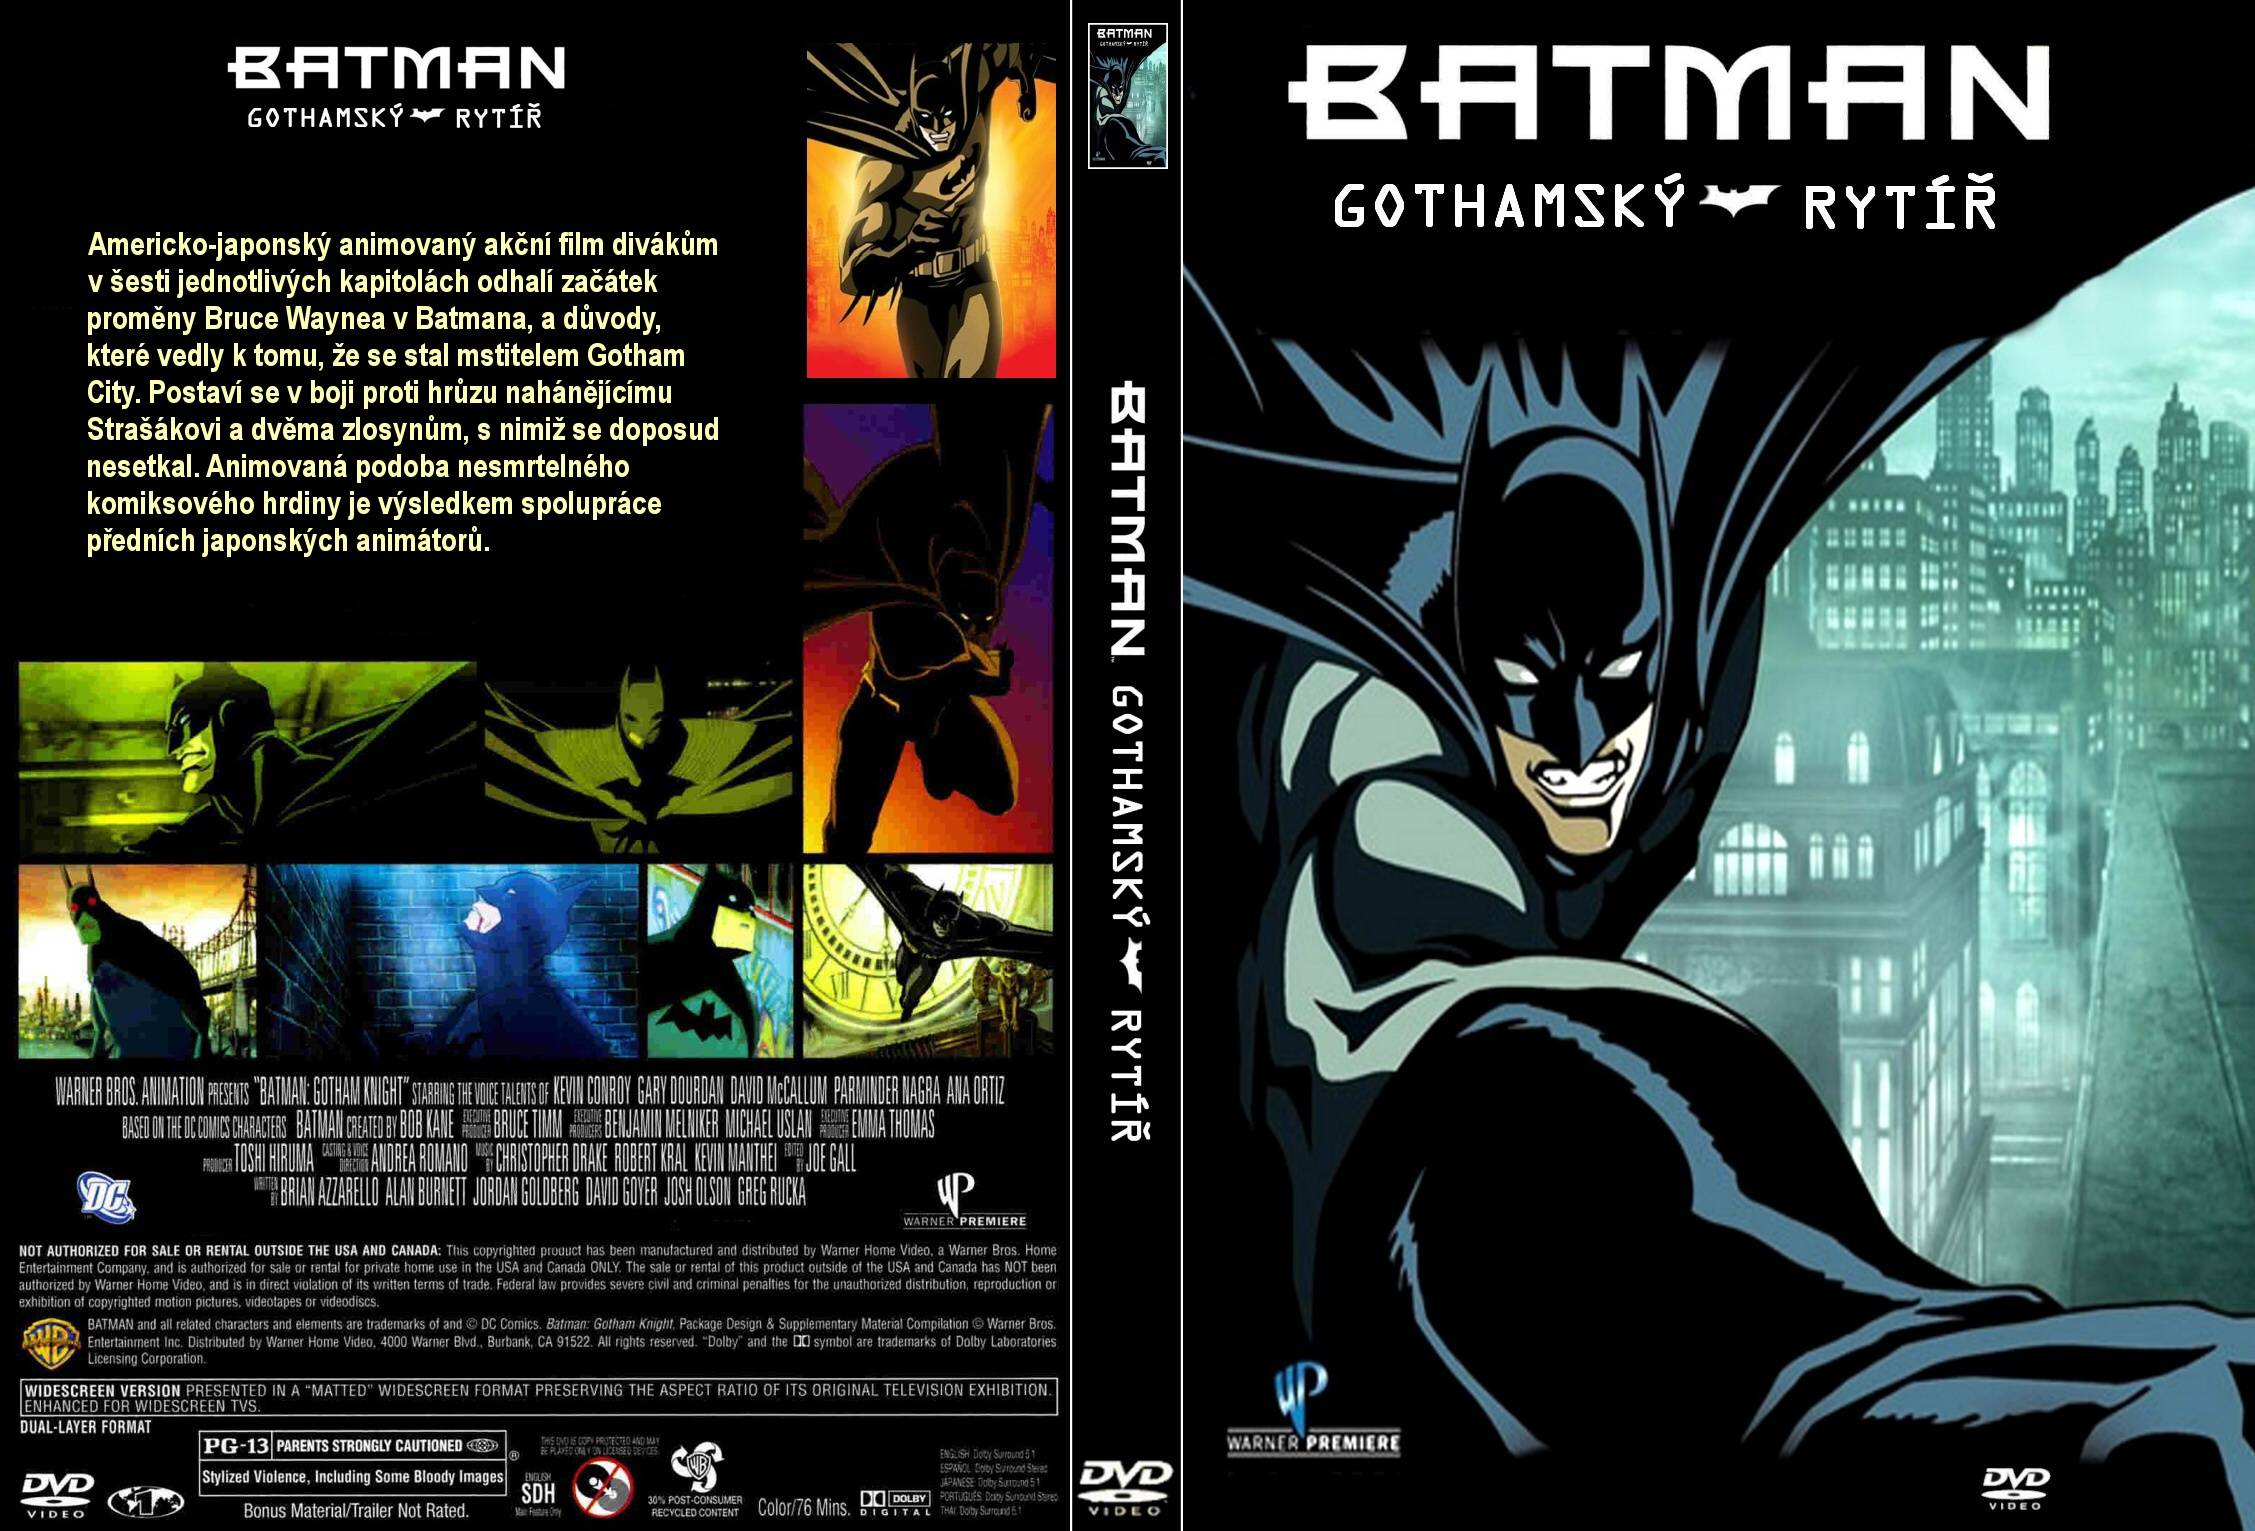 Gotham dvd cover related keywords amp suggestions gotham dvd cover